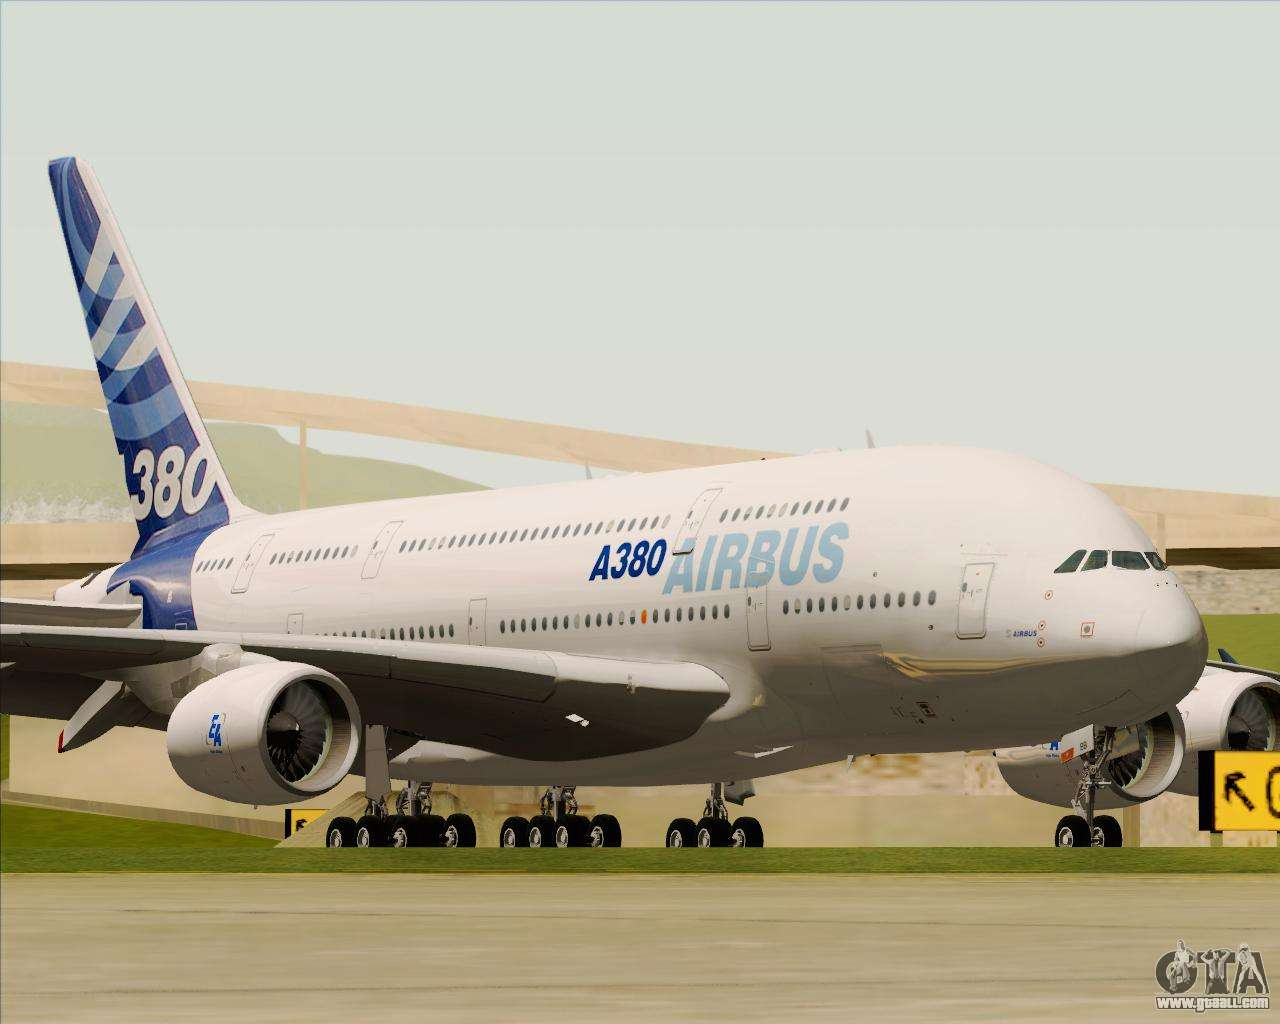 download di airbus a380 861 fsx :: learrefora ga